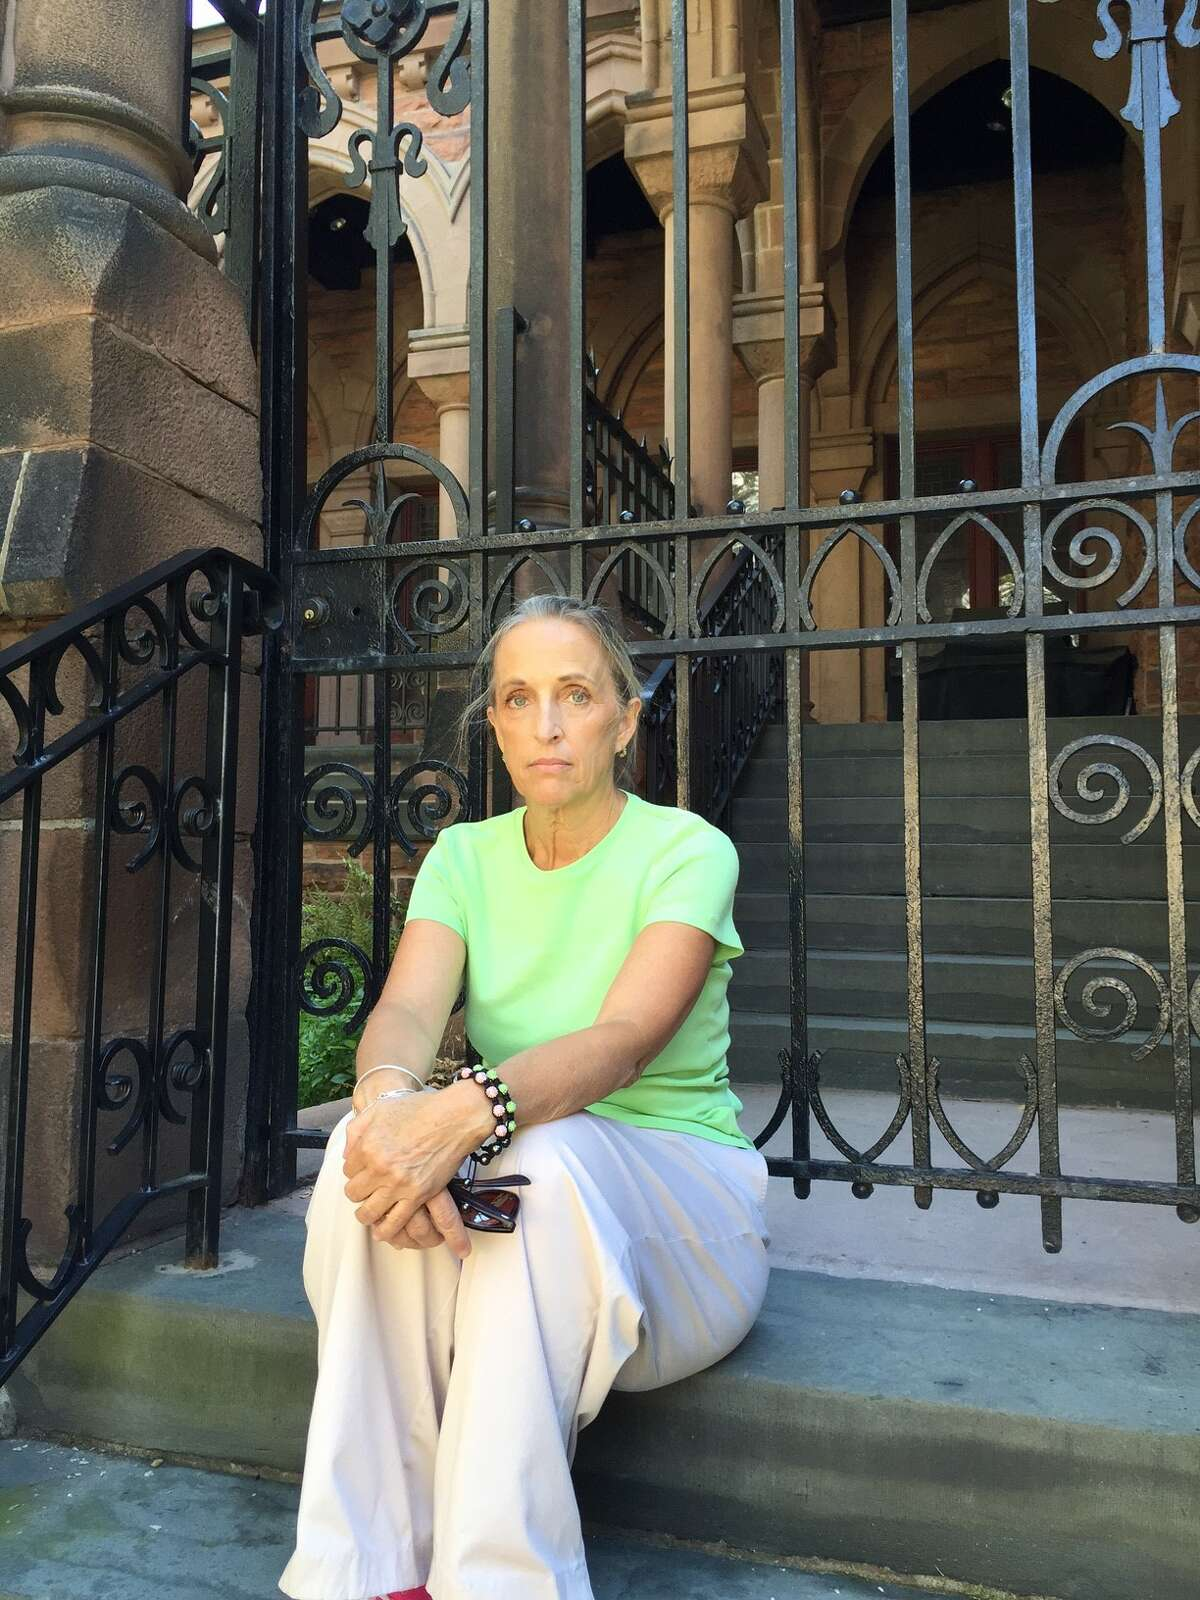 Alice Malavasic quit the Cathedral of All Saints, in the background, after more than 20 years after Bishop William Love's opposition to same-sex marriage. The bishop's position has caused a deep rift in the Albany Episcopal diocese. Malavasic and other parishioners drive to Bennington, Vt. to attend an Episcopal church that is more affirming of gays and lesbians than the Albany diocese. (Paul Grondahl / Times Union)